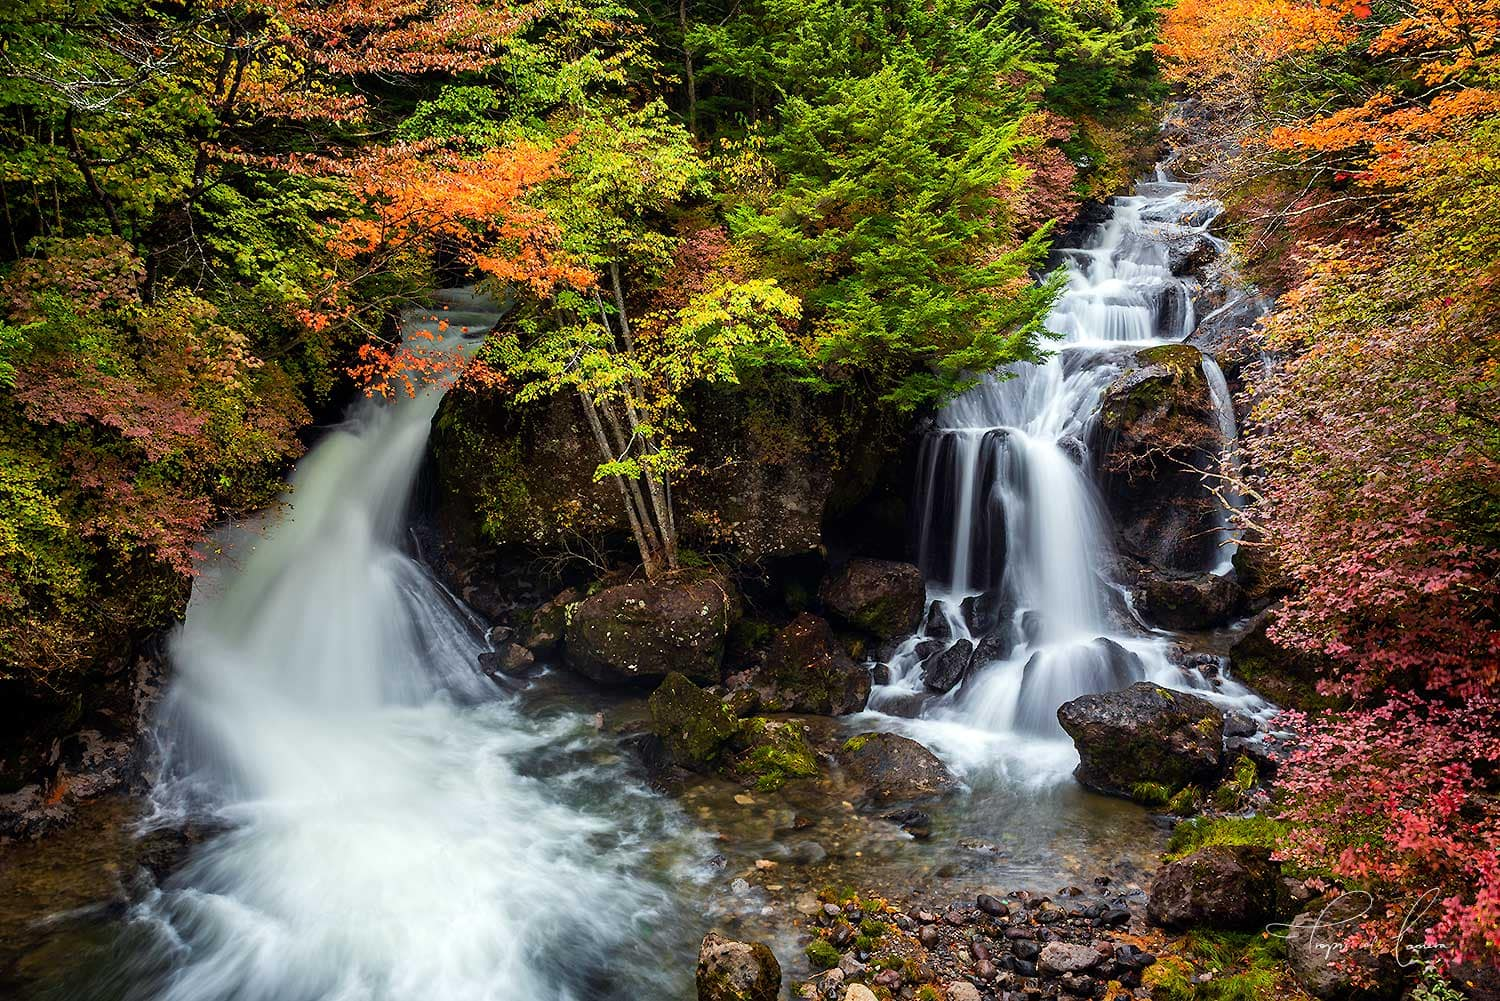 Ryuzu Falls, a dual waterfall surrounded by autumn leaves, Nikko, Japan